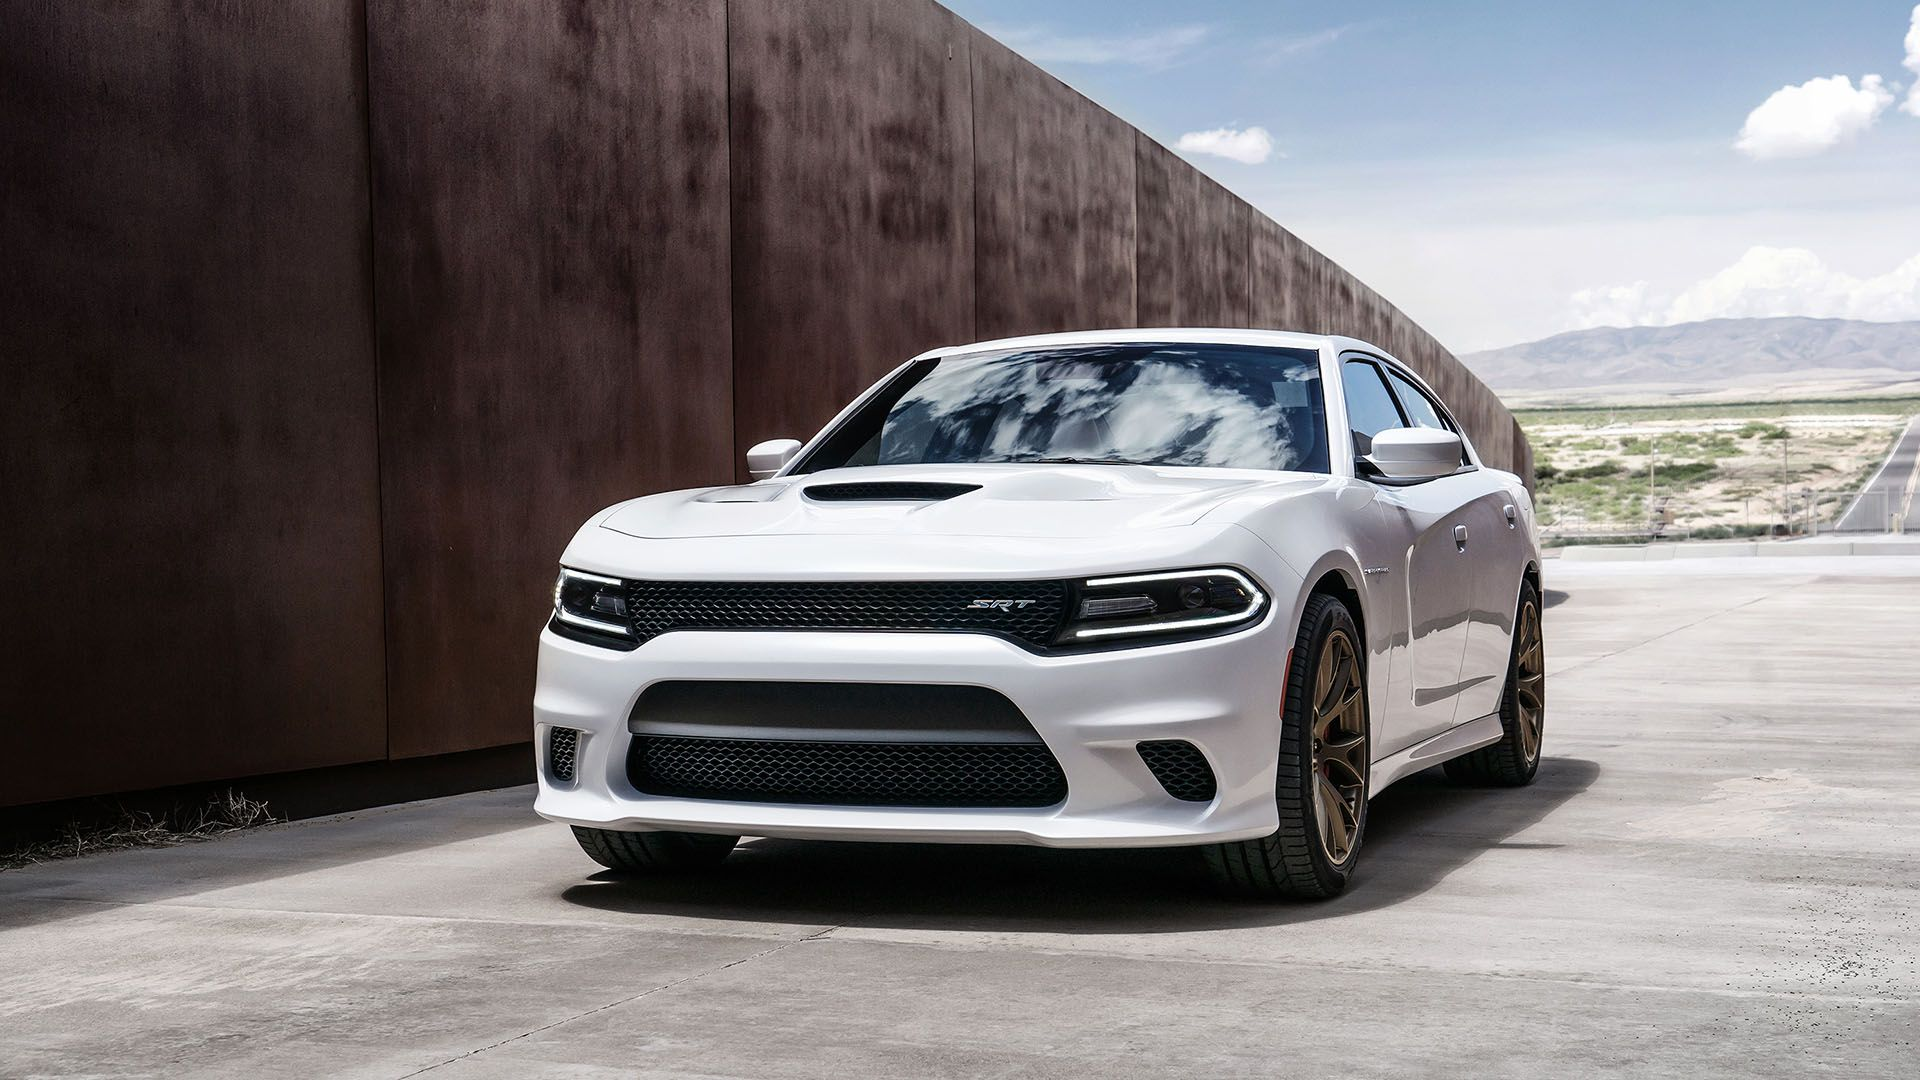 reviews dodge ca charger hellcat price review car wheels main srt